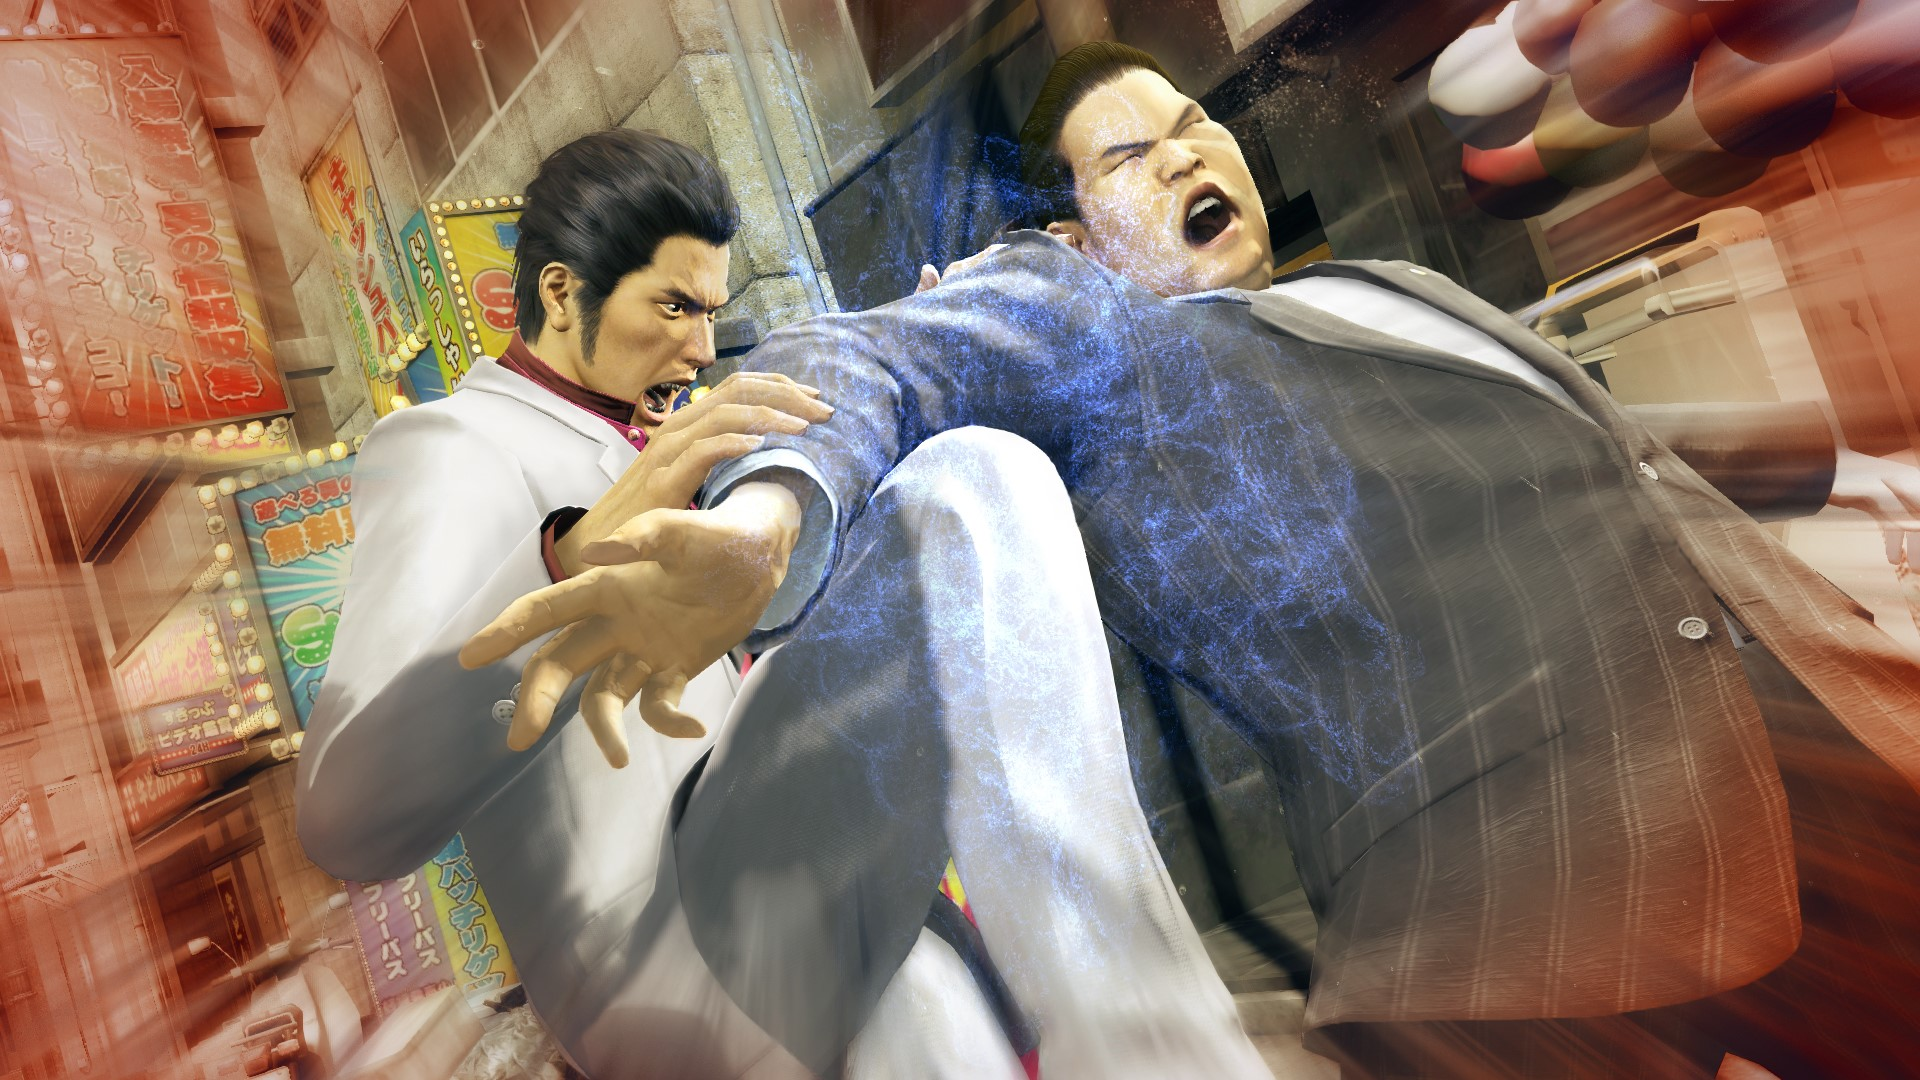 Yakuza Kiwami (Steam key) -- RU